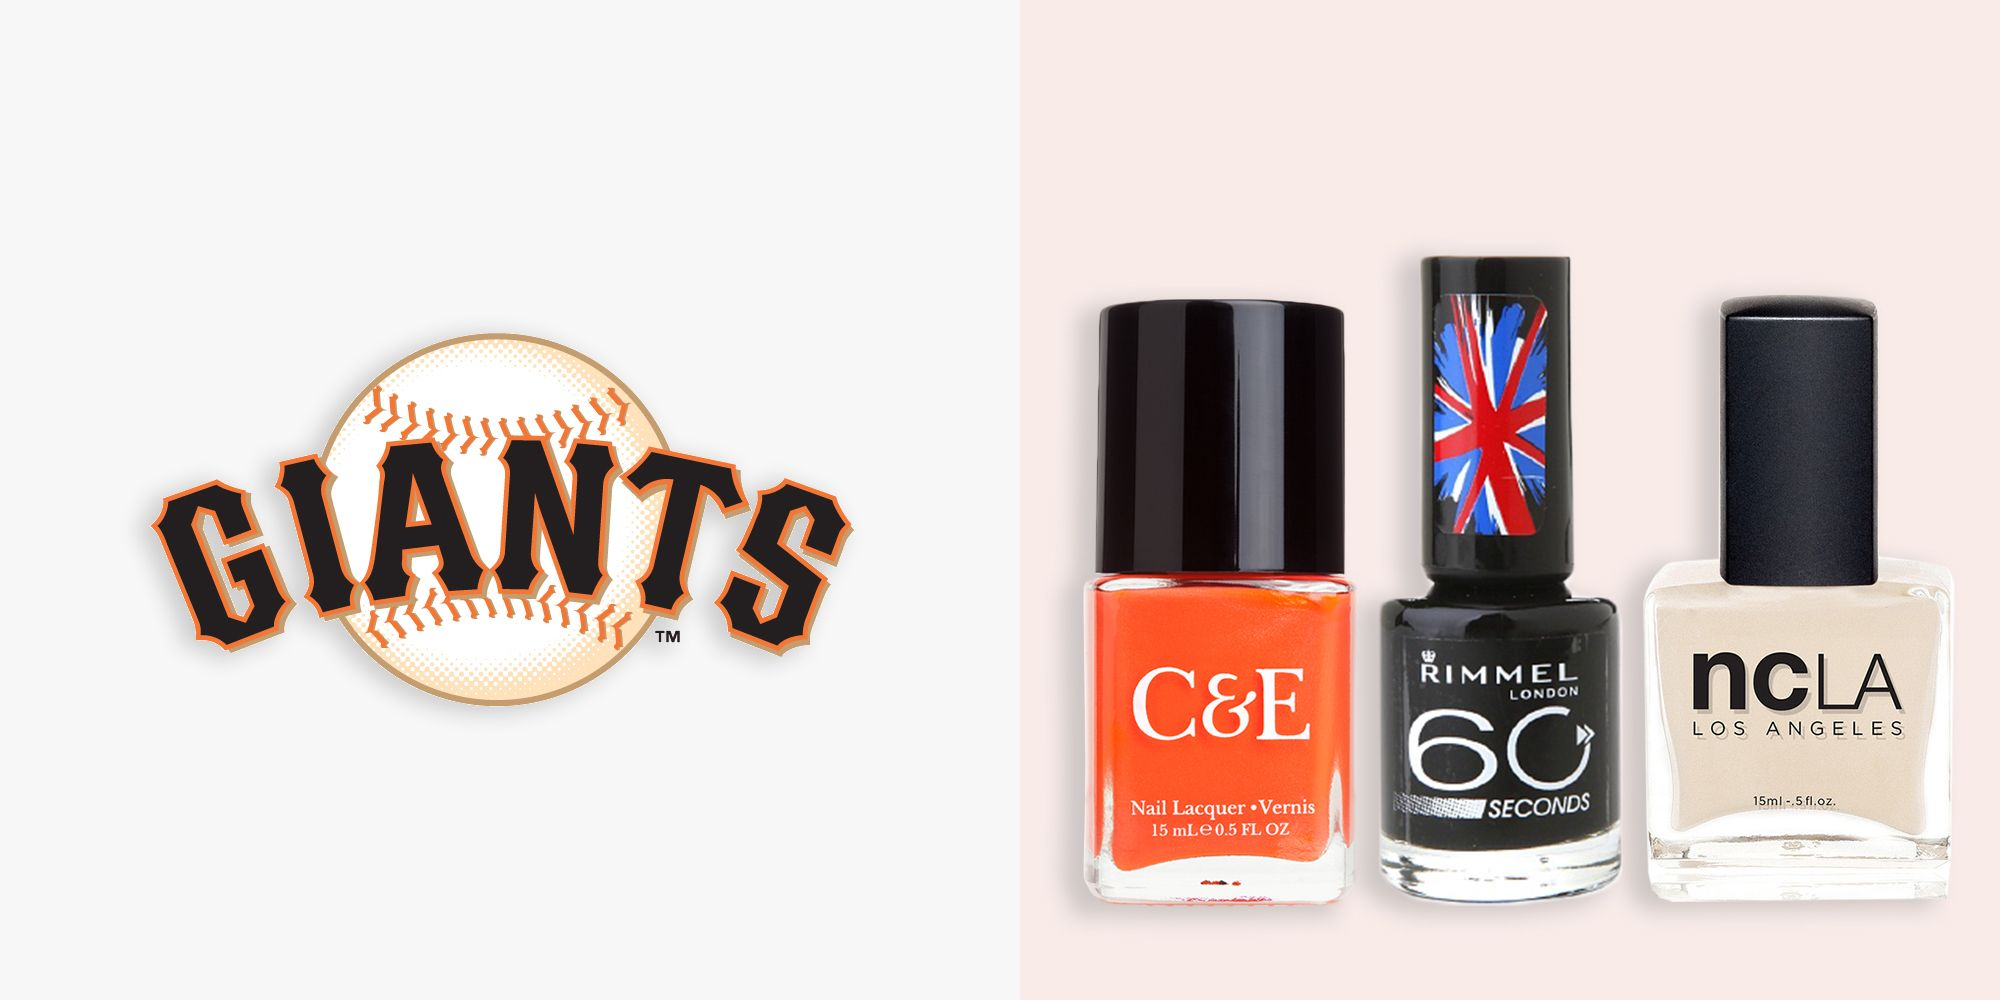 9 Best Nail Polish Colors for Opening Day 2018 - Cute Baseball ...